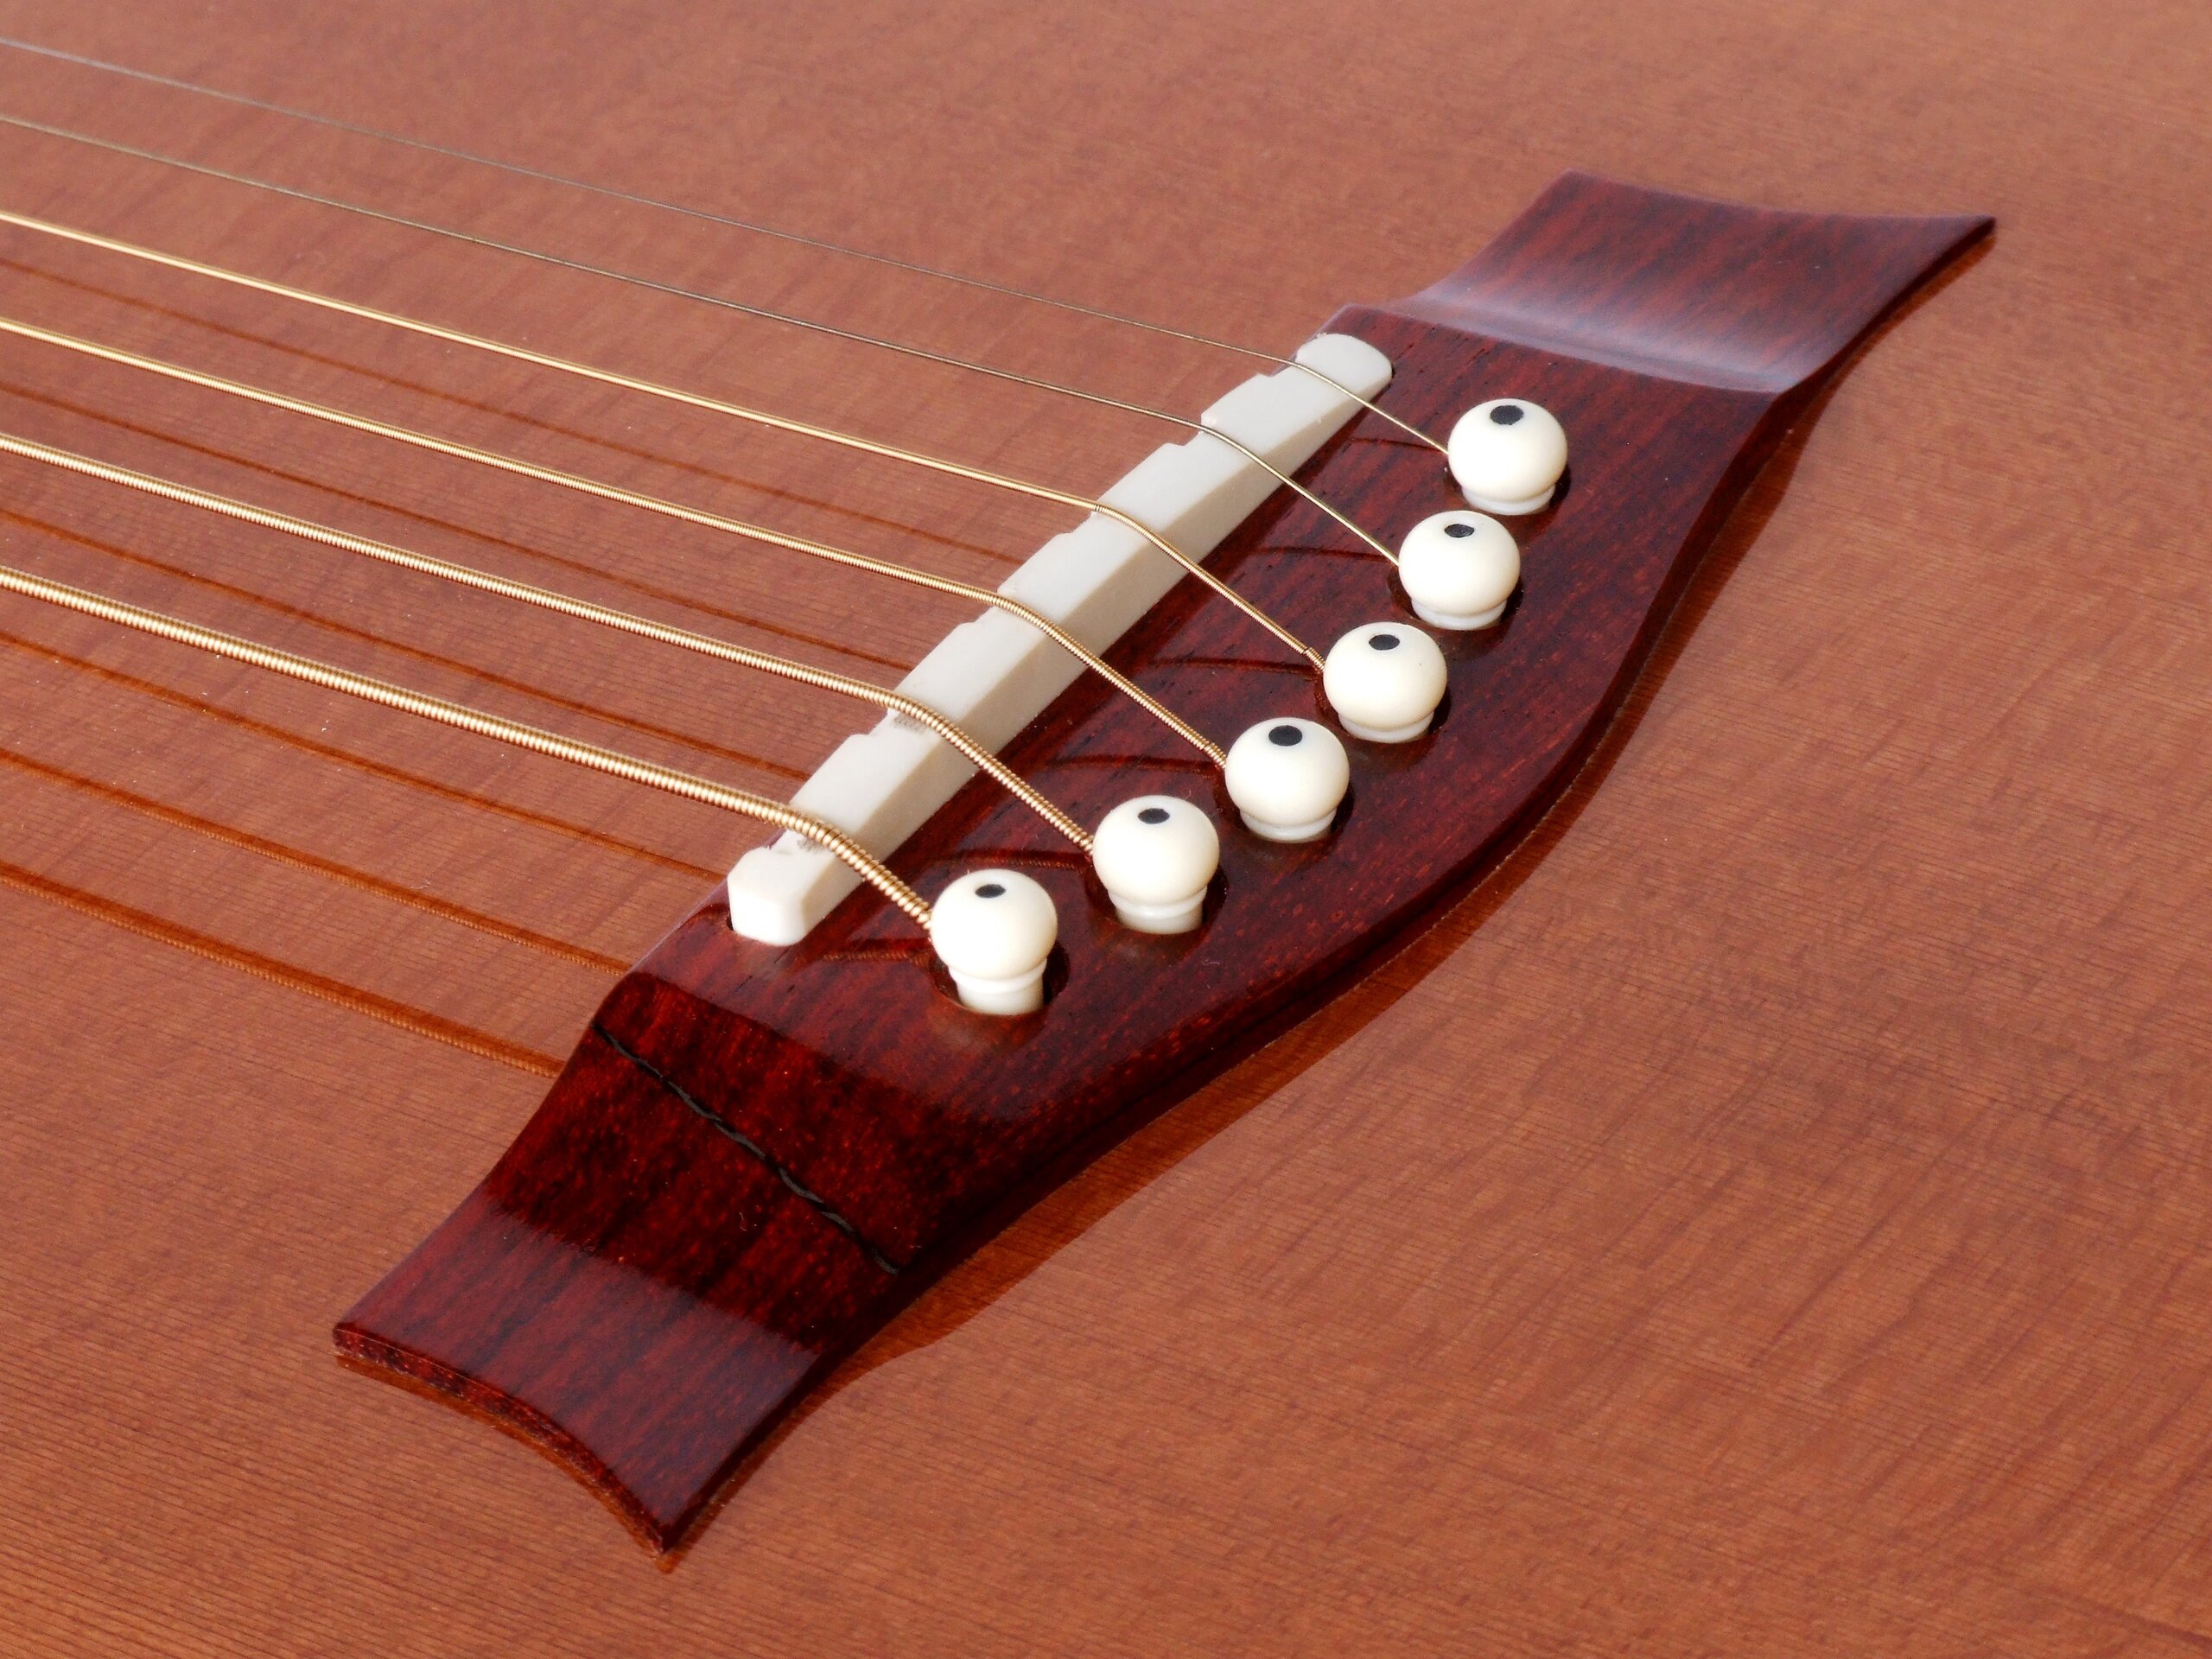 Carbon fibre reinforced bridge on a steel string guitar with a redwood top